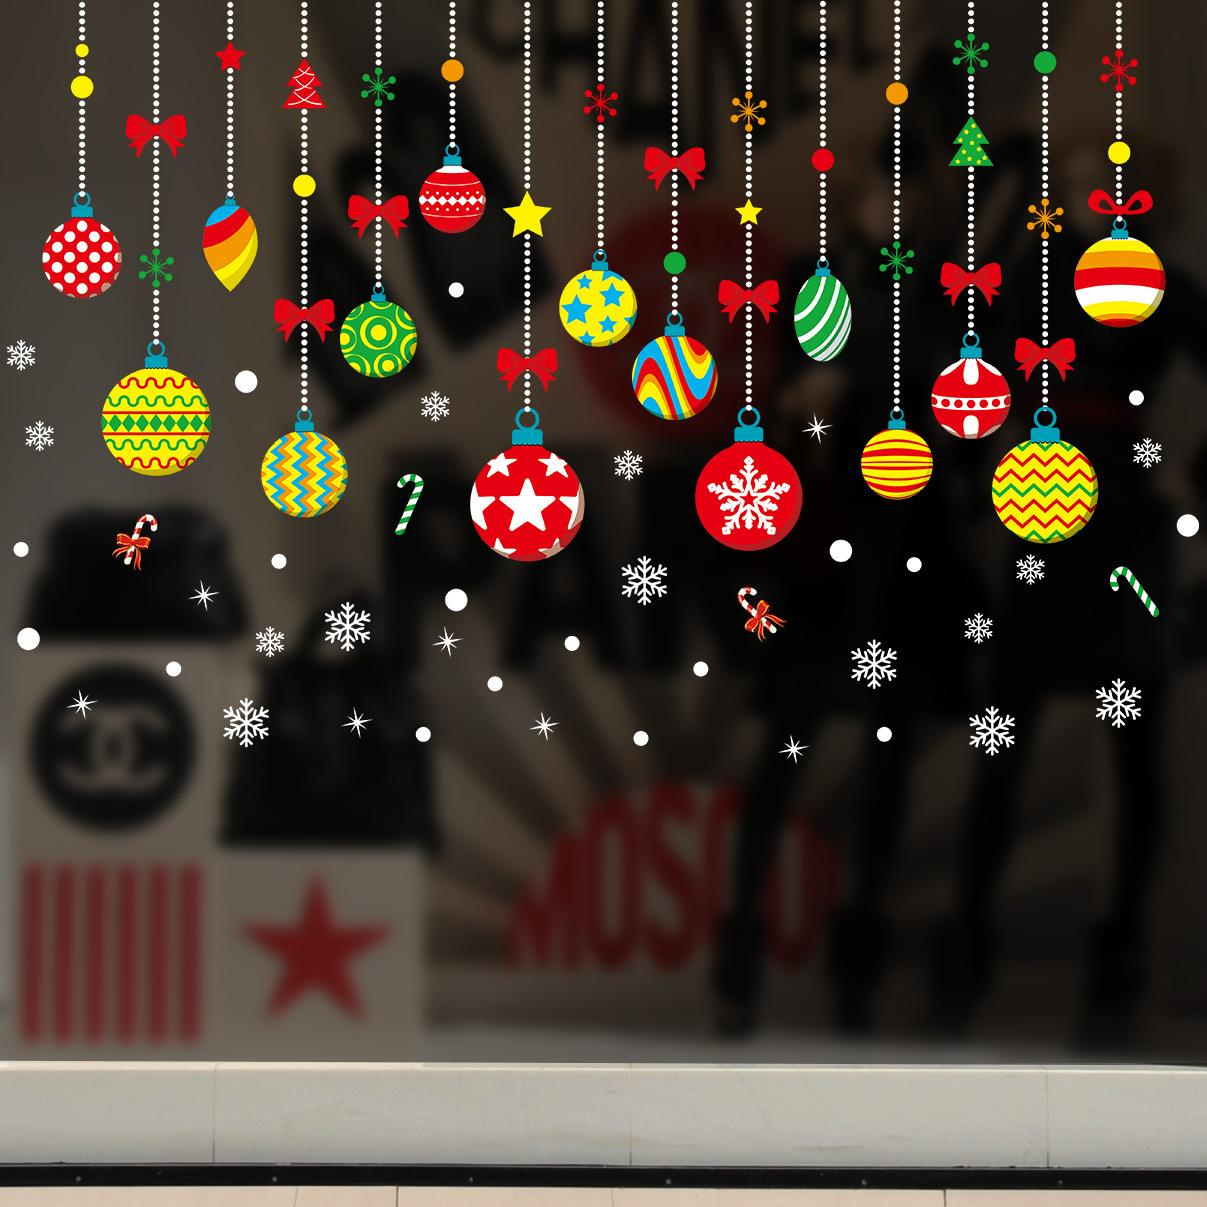 Merry Christmas Window Glass Shop Store Wall Stickers Windows Christmas Decorations Ornaments Wall Stickers